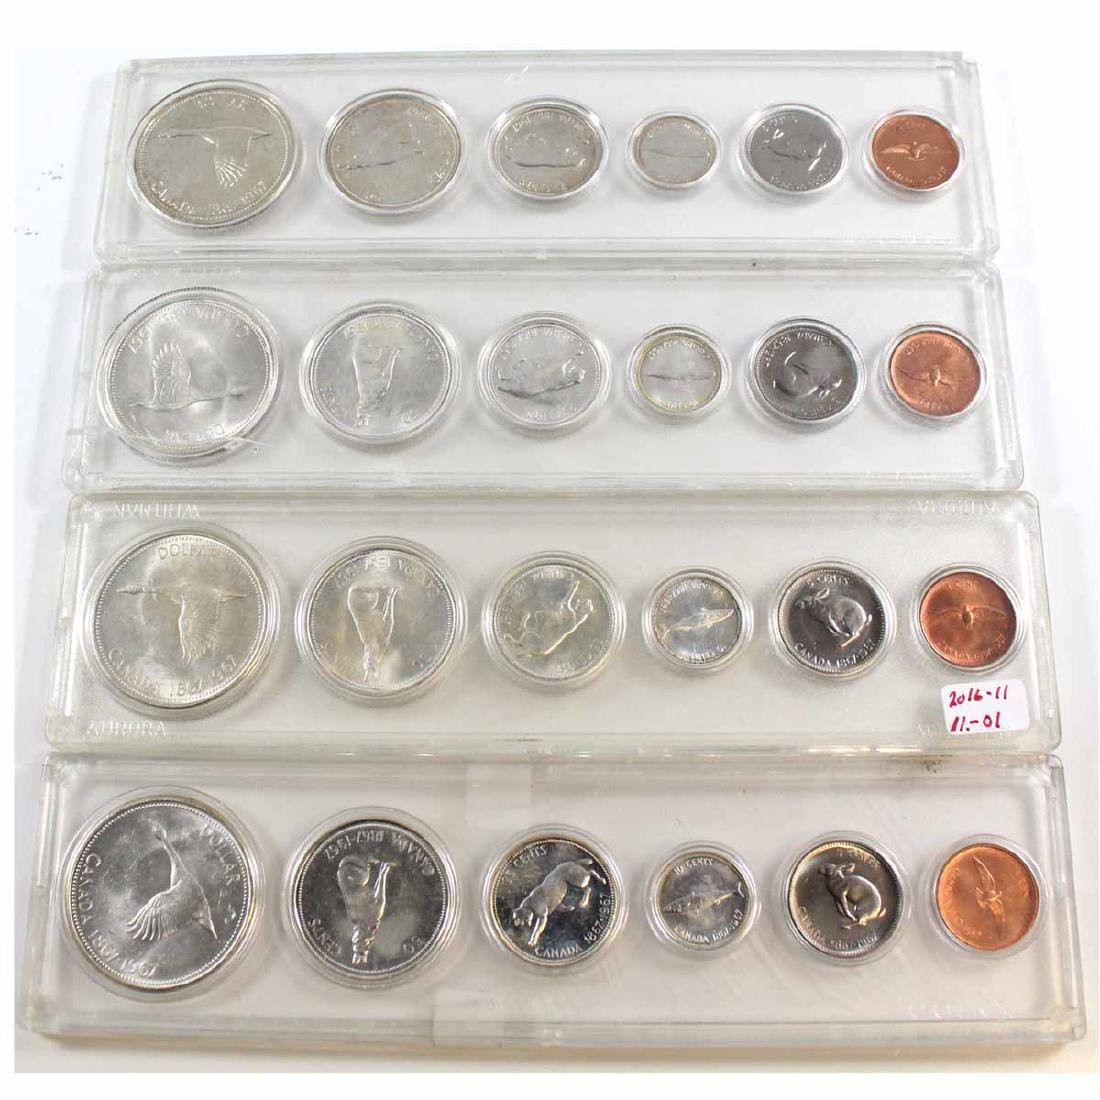 4x 1967 Canada 6-Coin Year Set in hard plastic holder.